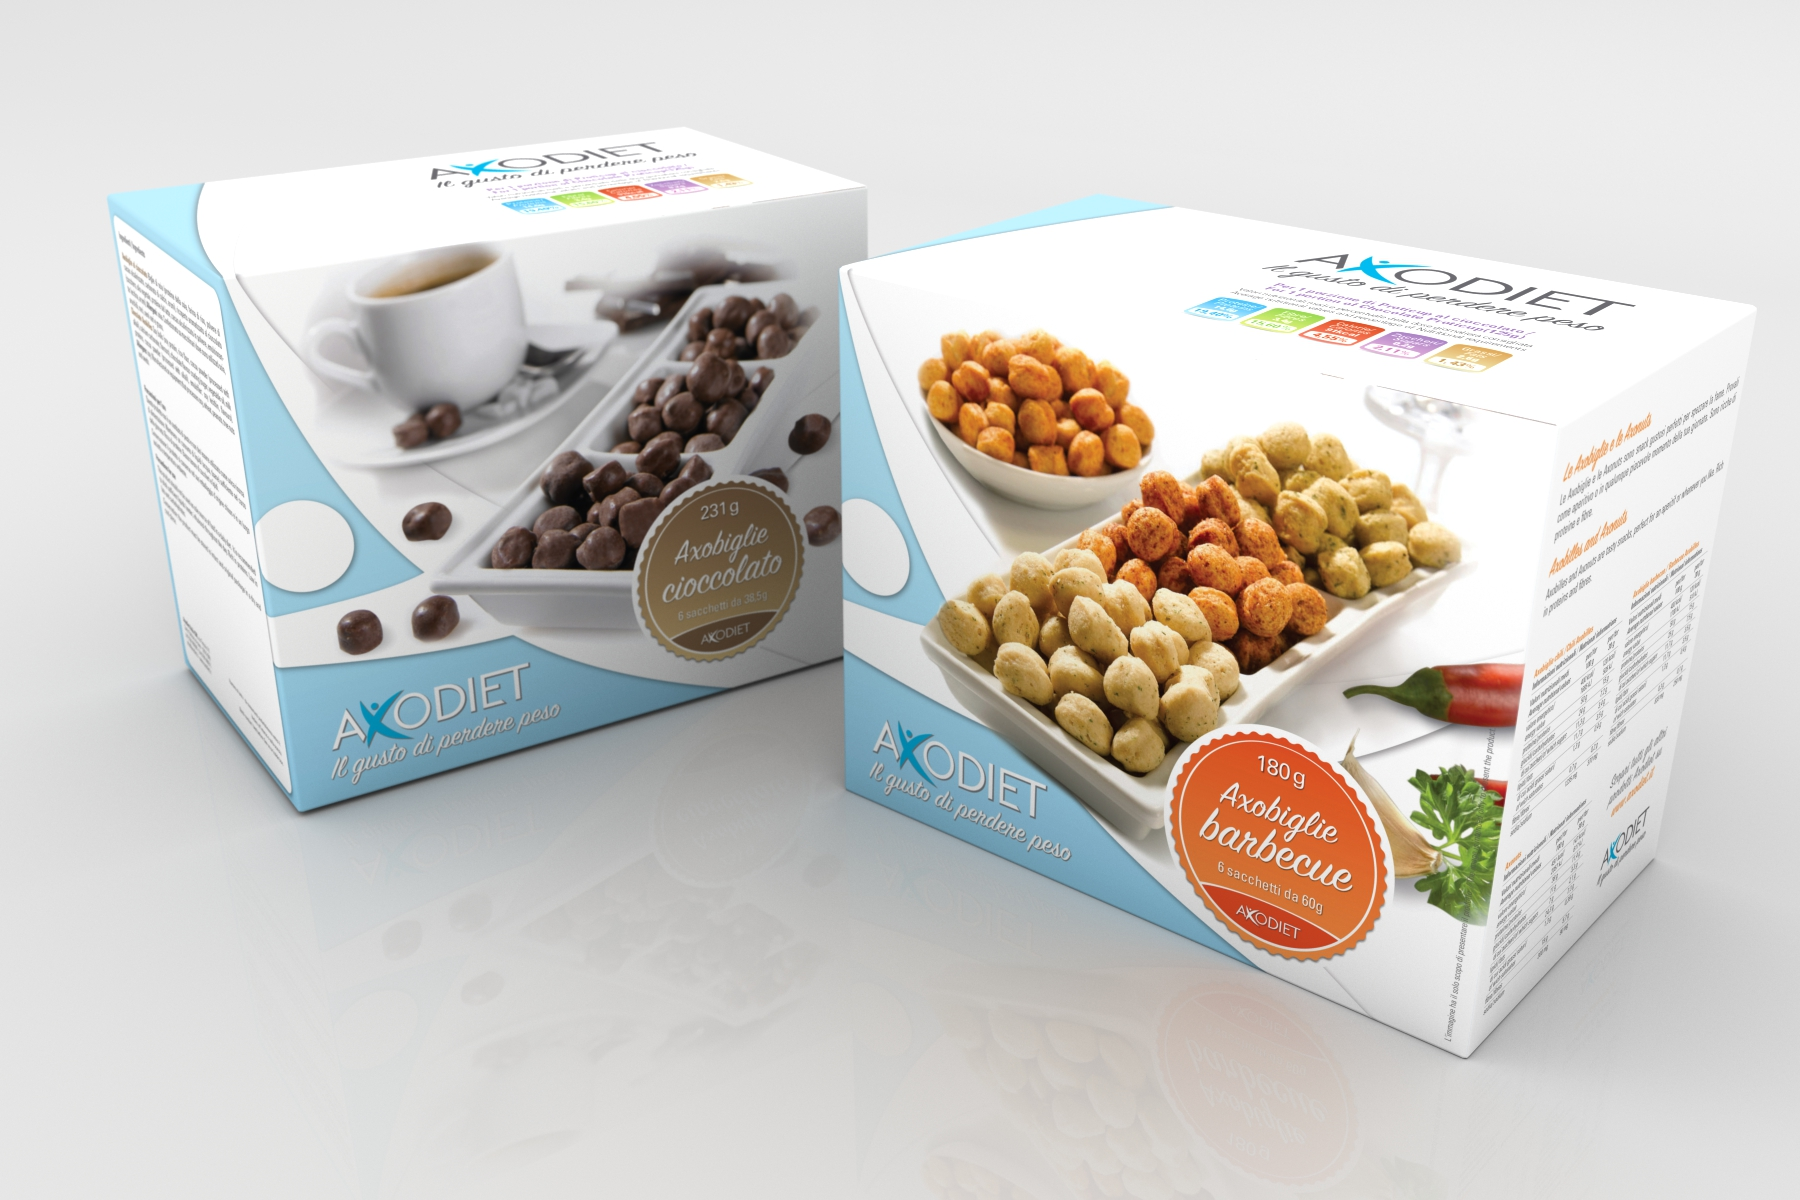 Packaging Axodiet - Scatole